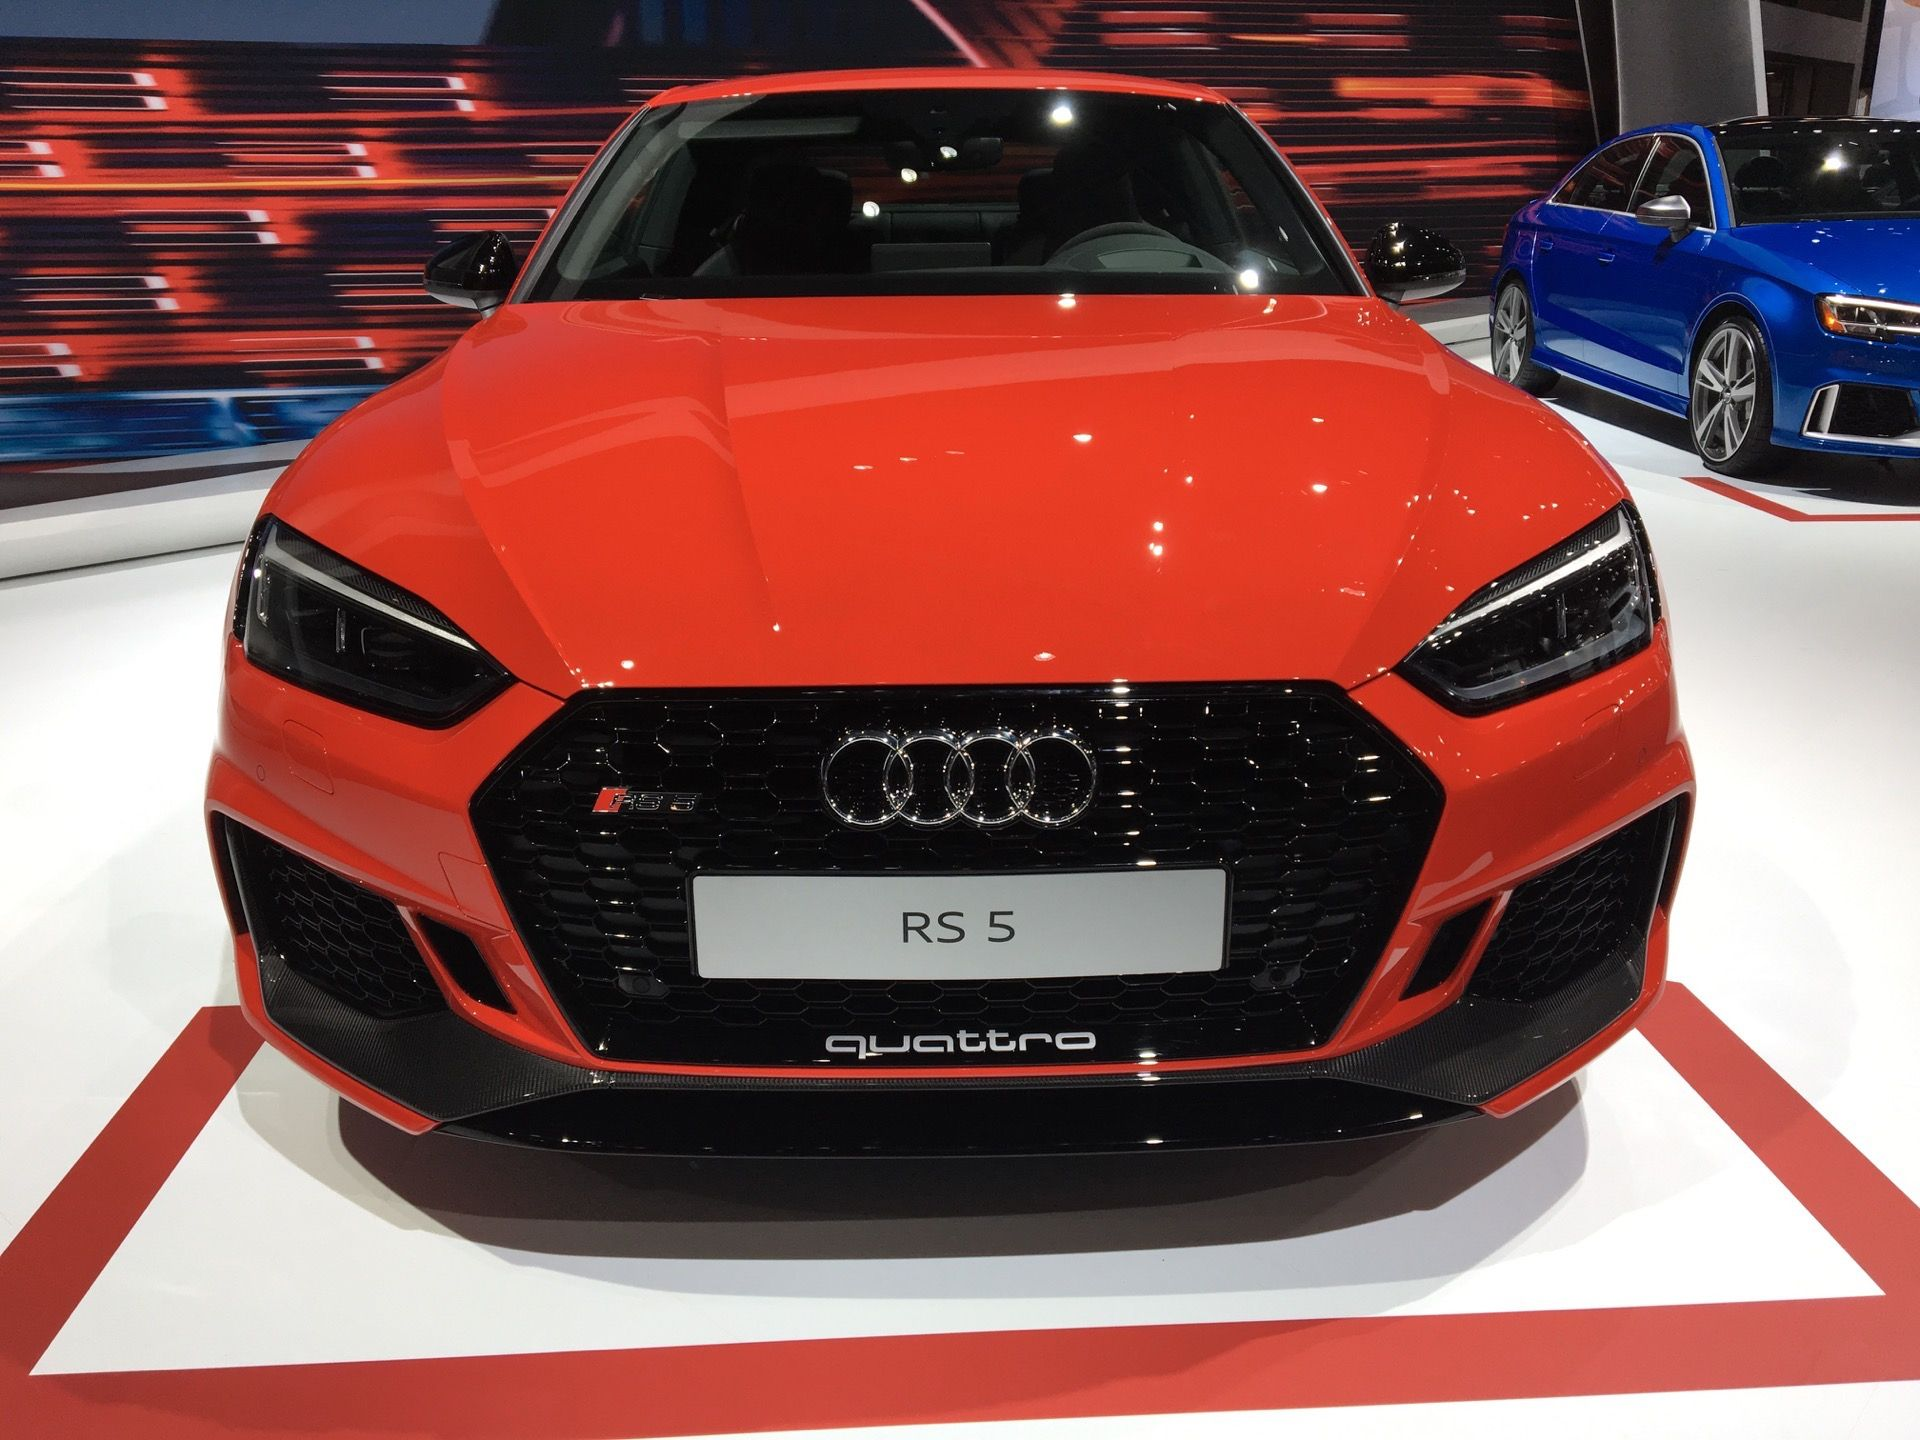 When we first heard saw the current gen audi we were impressed at how well it blended daily driving comfort with some real deal sports car performance